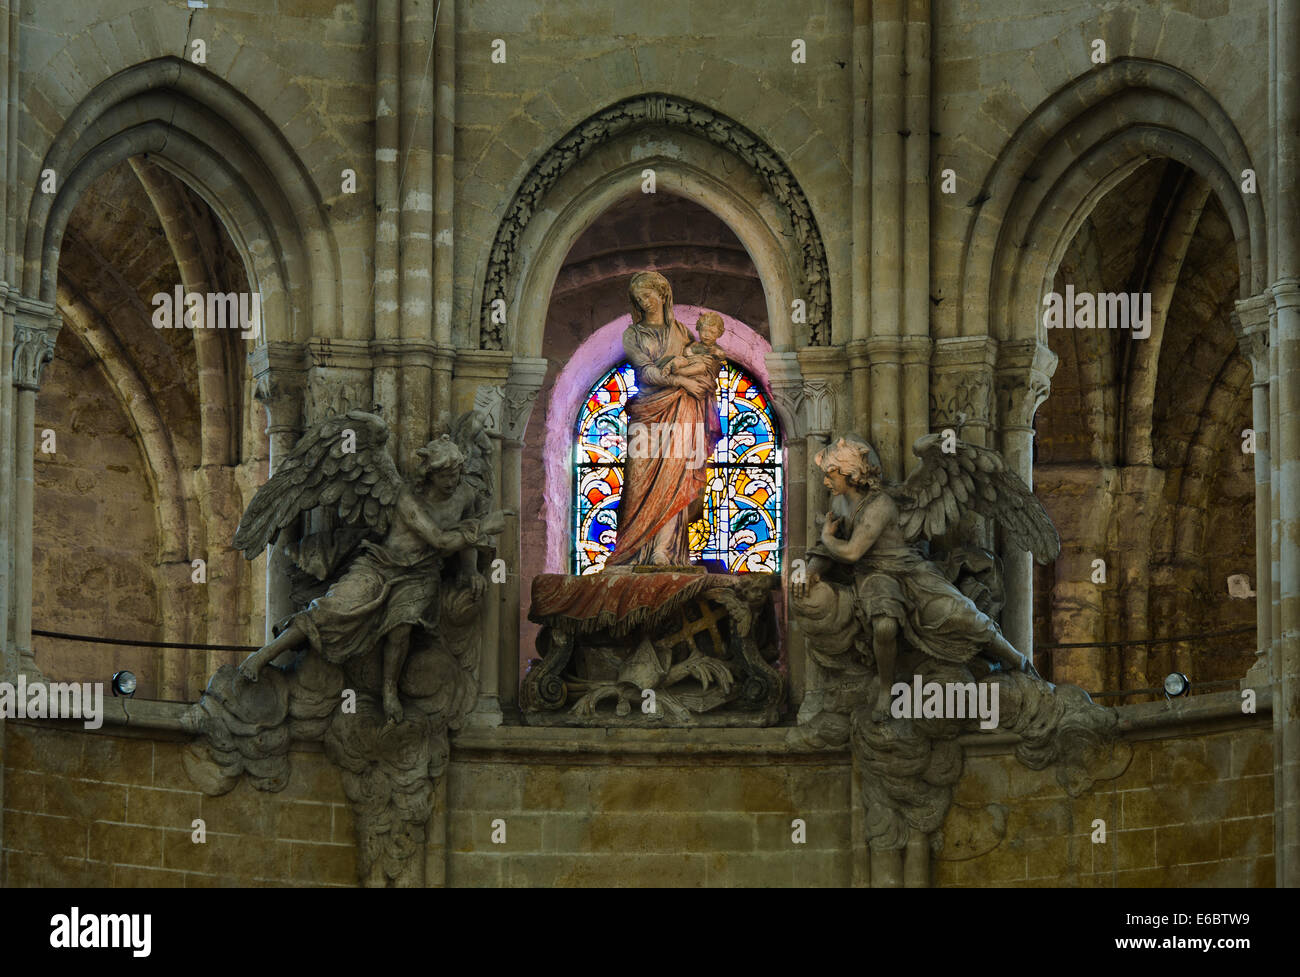 FRANCE SENLIS 23 AUG: interiors of cathedral in Senlis town of France - Stock Image